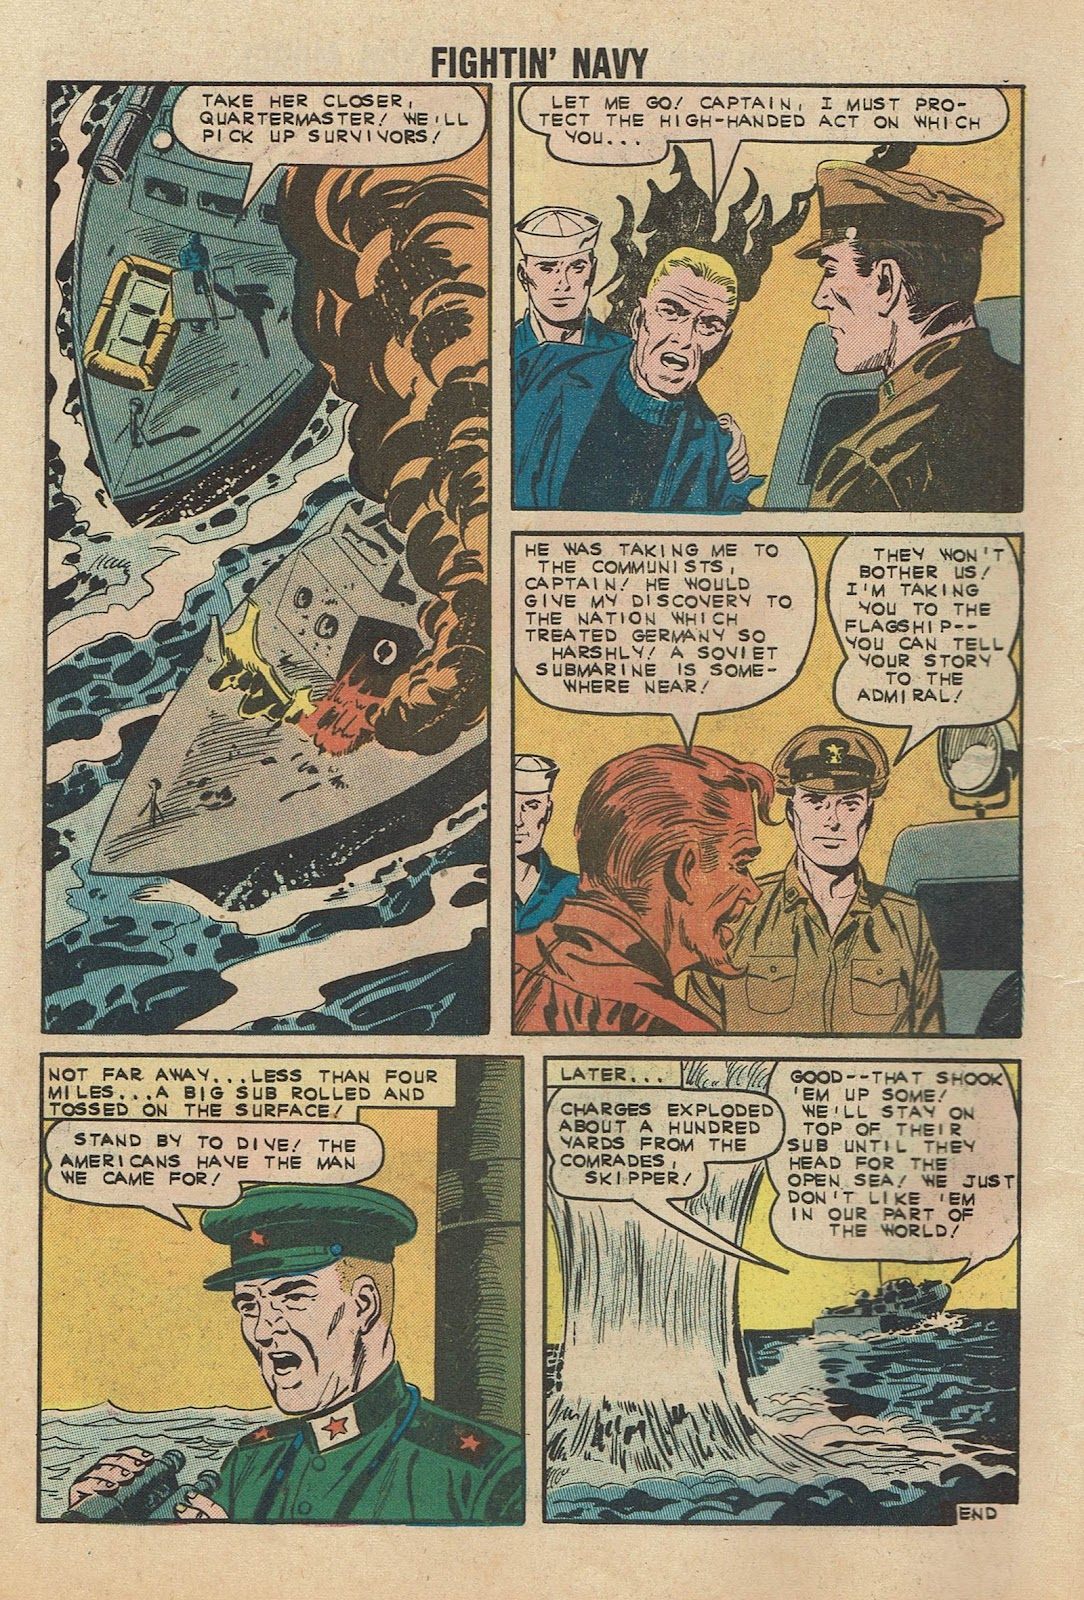 Read online Fightin' Navy comic -  Issue #104 - 10